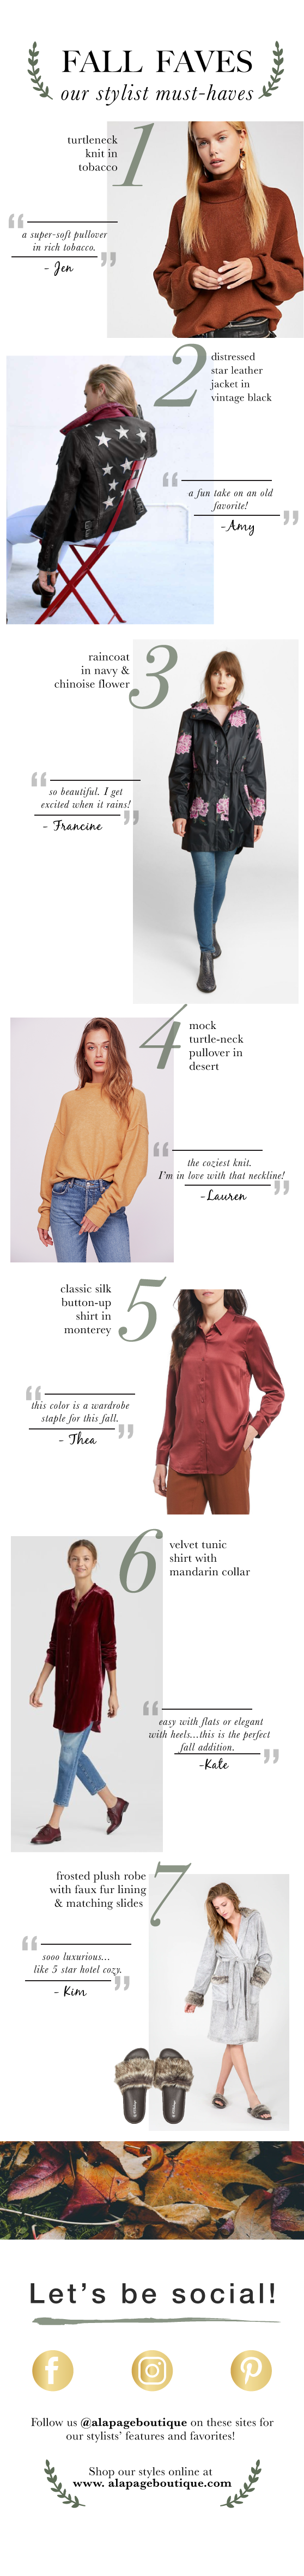 Fall favorites picked by alapage boutique's stylists